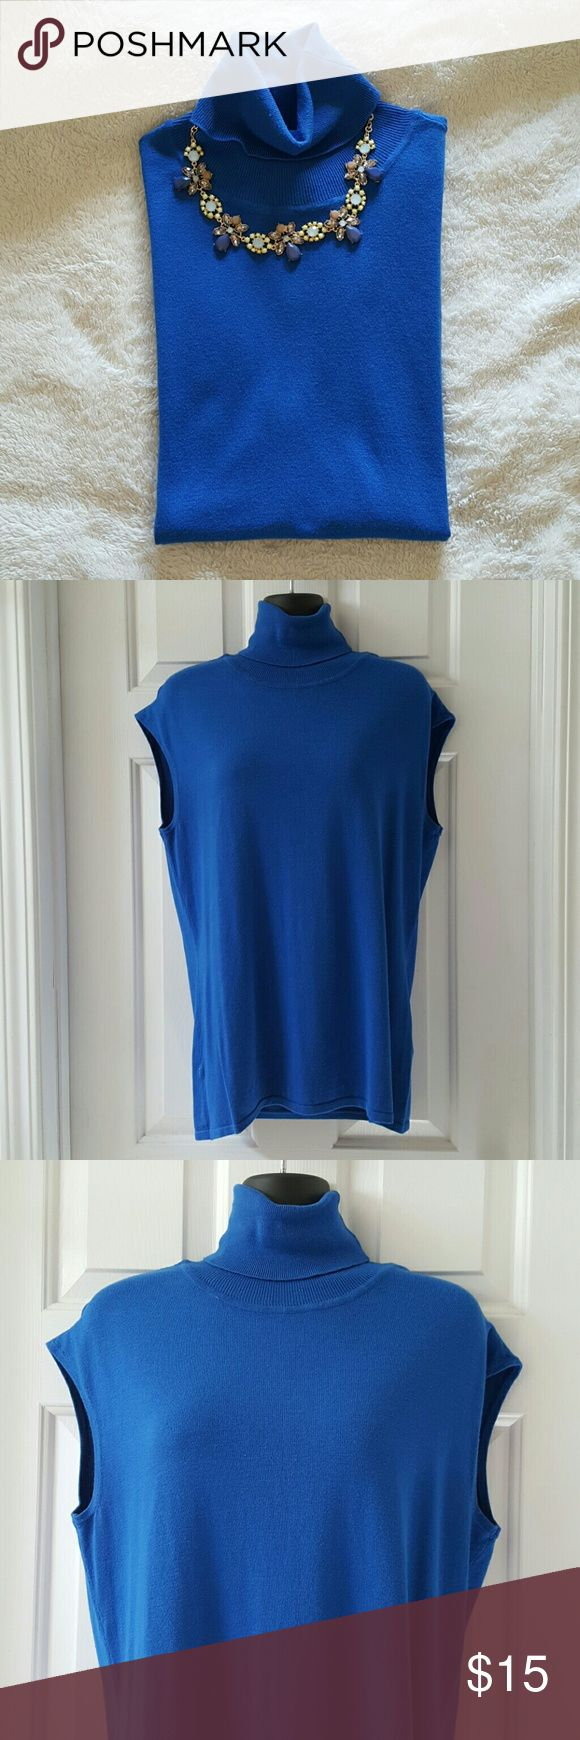 Eva Mendes Sleeveless Turtleneck Top Eva Mendes for NY&CO Sleeveless Turtleneck Top. Excellent condition. Length from shoulder to hem is approx 27 inches. (Necklace not included) New York & Company Tops